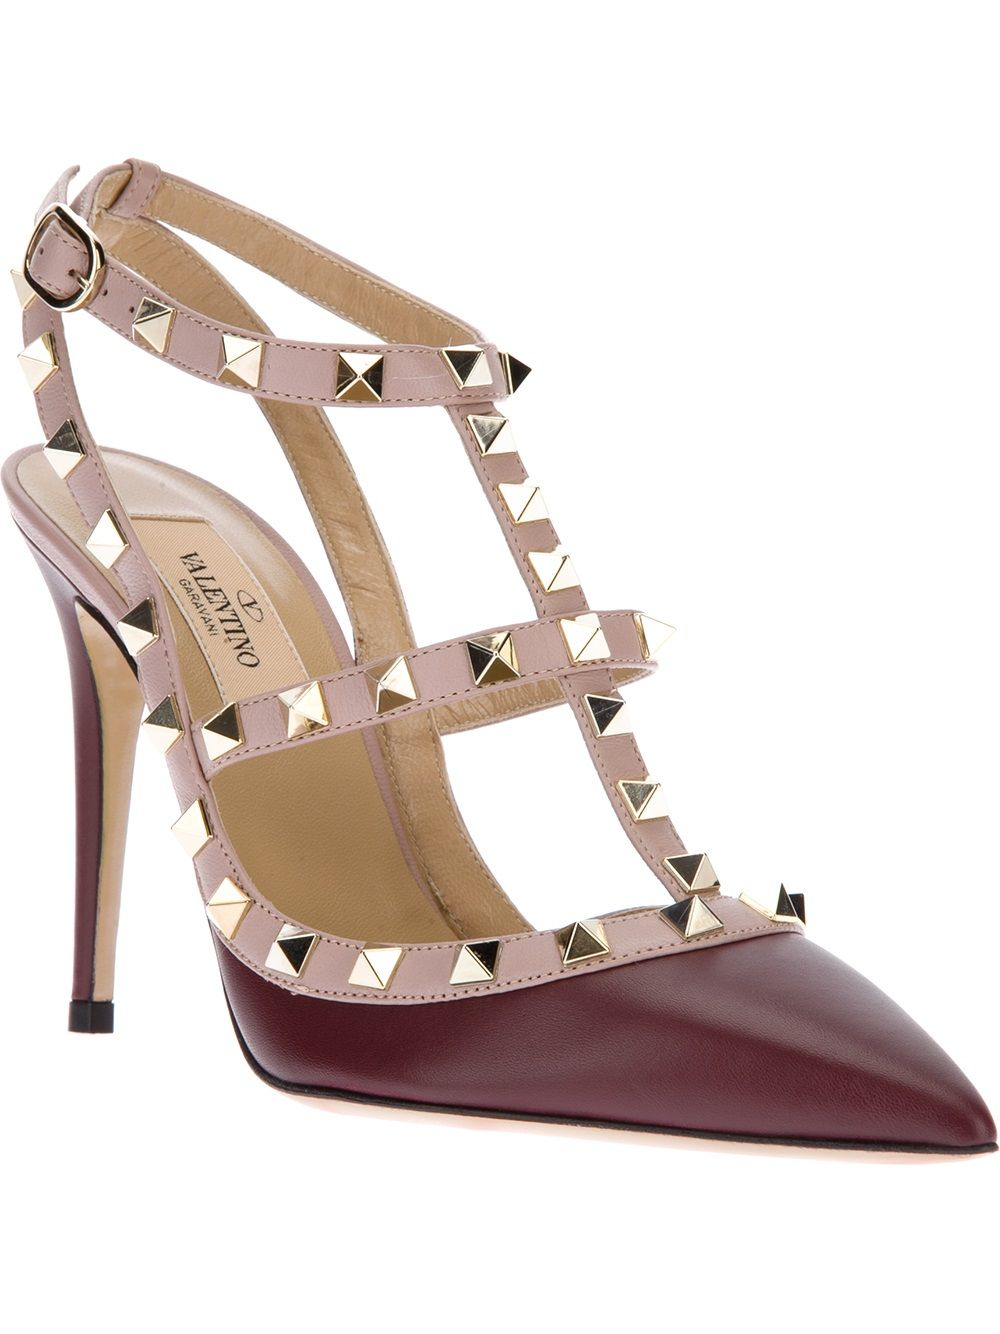 Valentino sandals shoes price - Shoe Boot